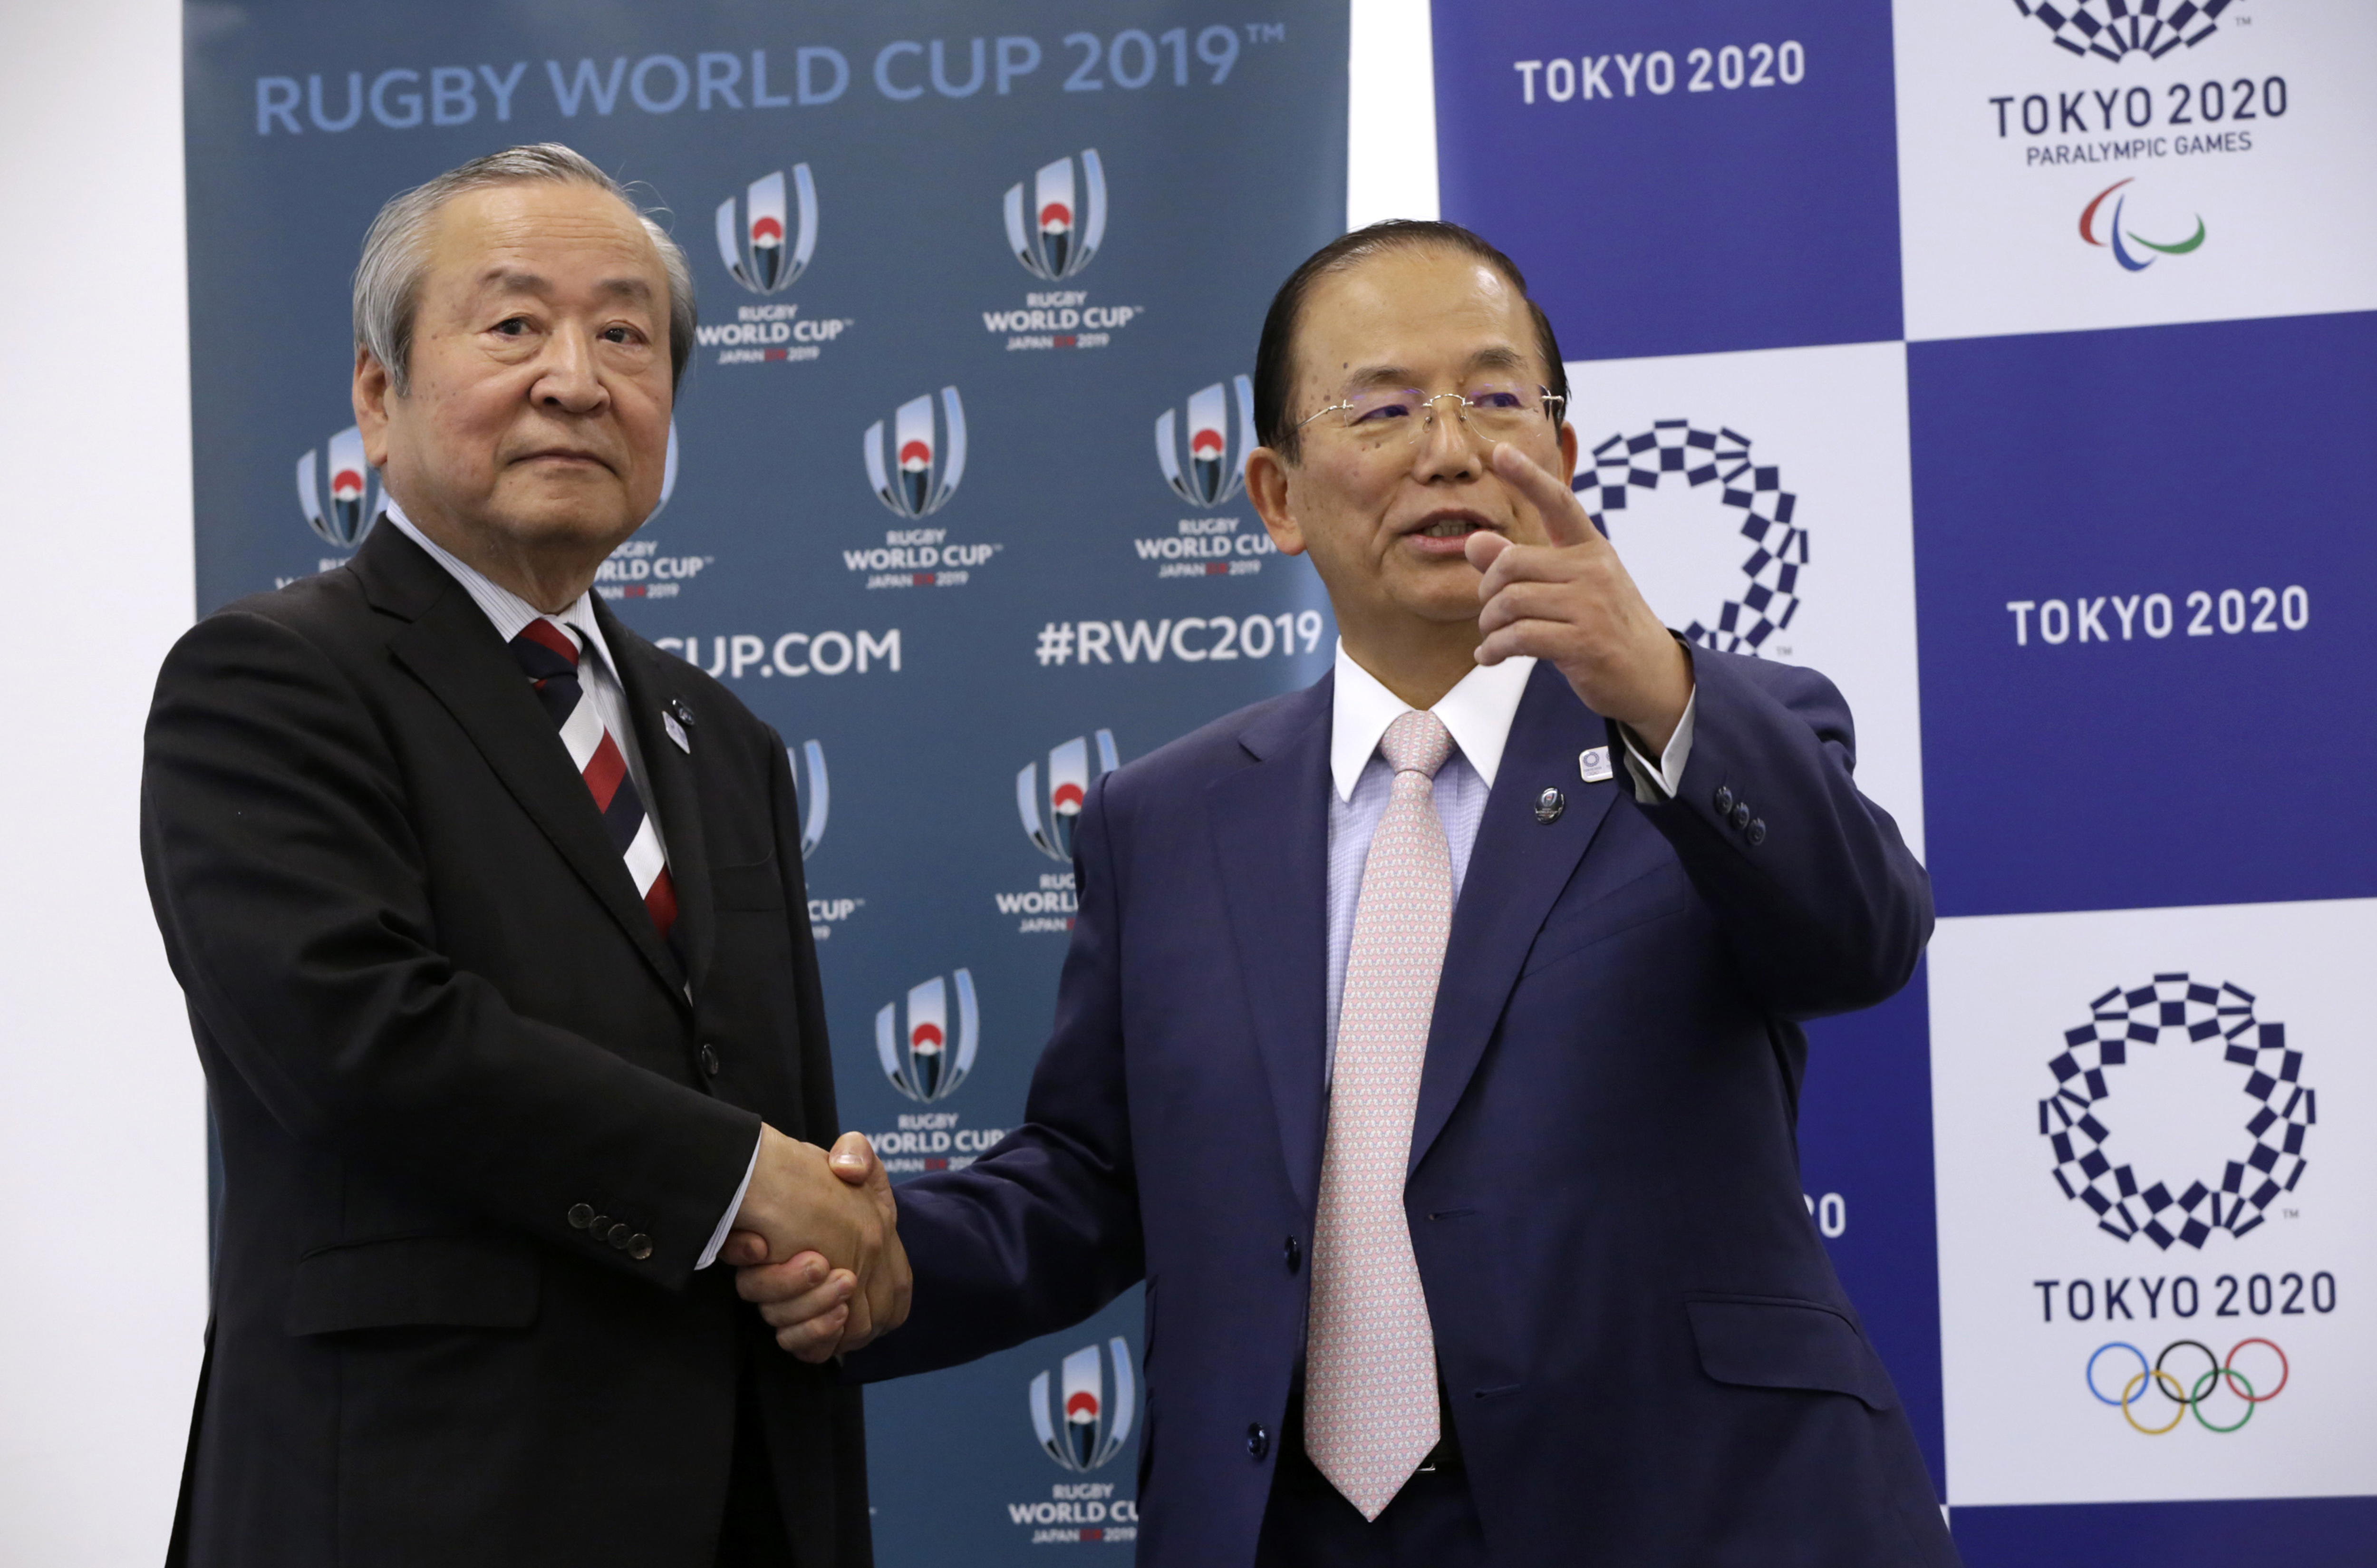 Tokyo 2020 Olympics CEO Toshiro Muto, right, and President and CEO of the 2019 Rugby World Cup Organizing Committee President and CEO Akira Shimazu shake hands after signing a collaborative agreement in Tokyo, Wednesday, April 26, 2017. Organizers of the